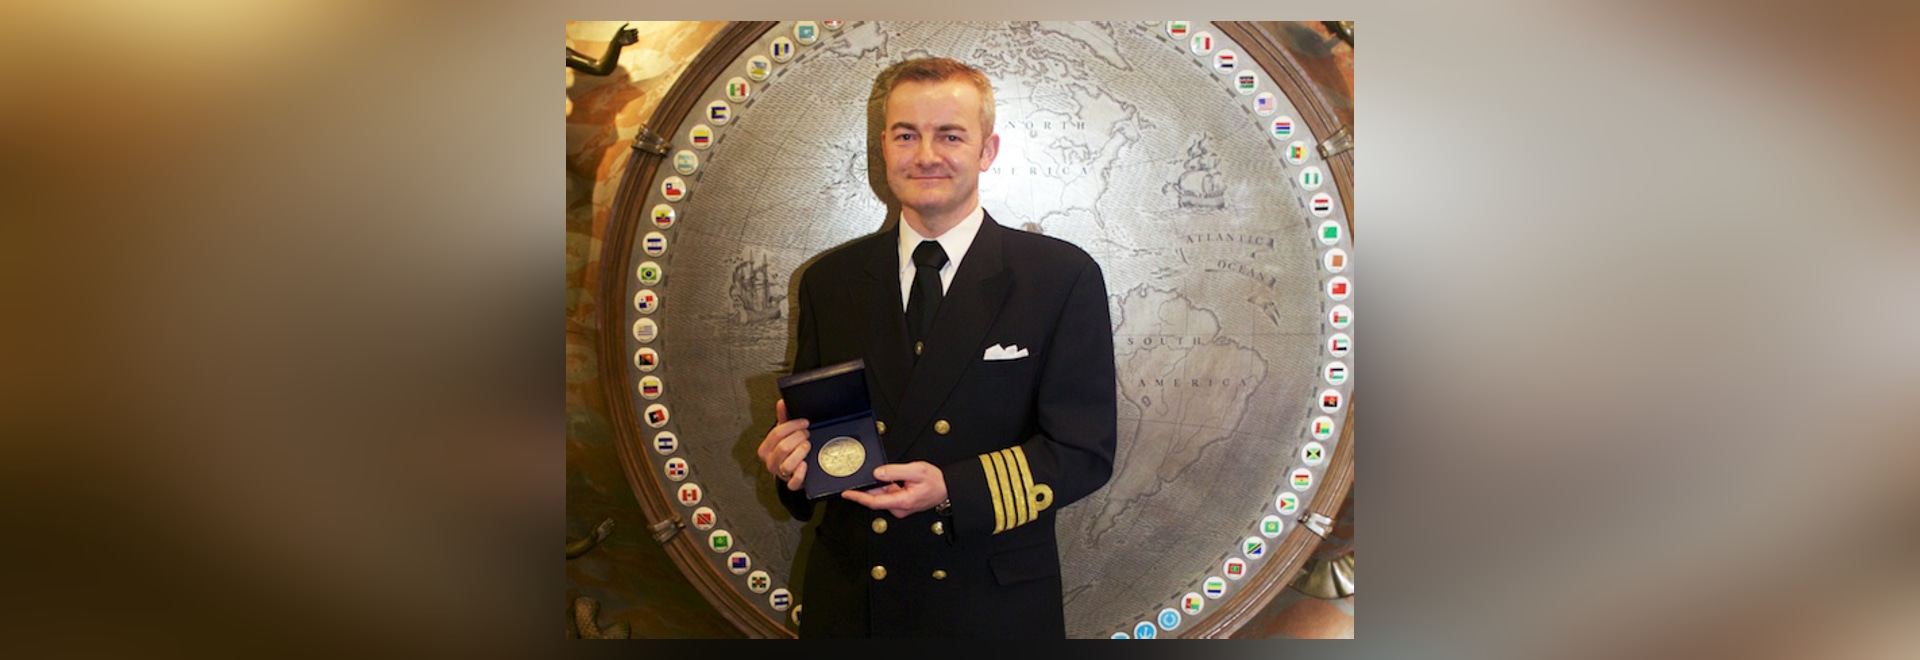 2014 IMO Award for Exceptional Bravery at Sea: Captain Andreas Kristensen with the medal he and his crew of the Britannia Seaways received.